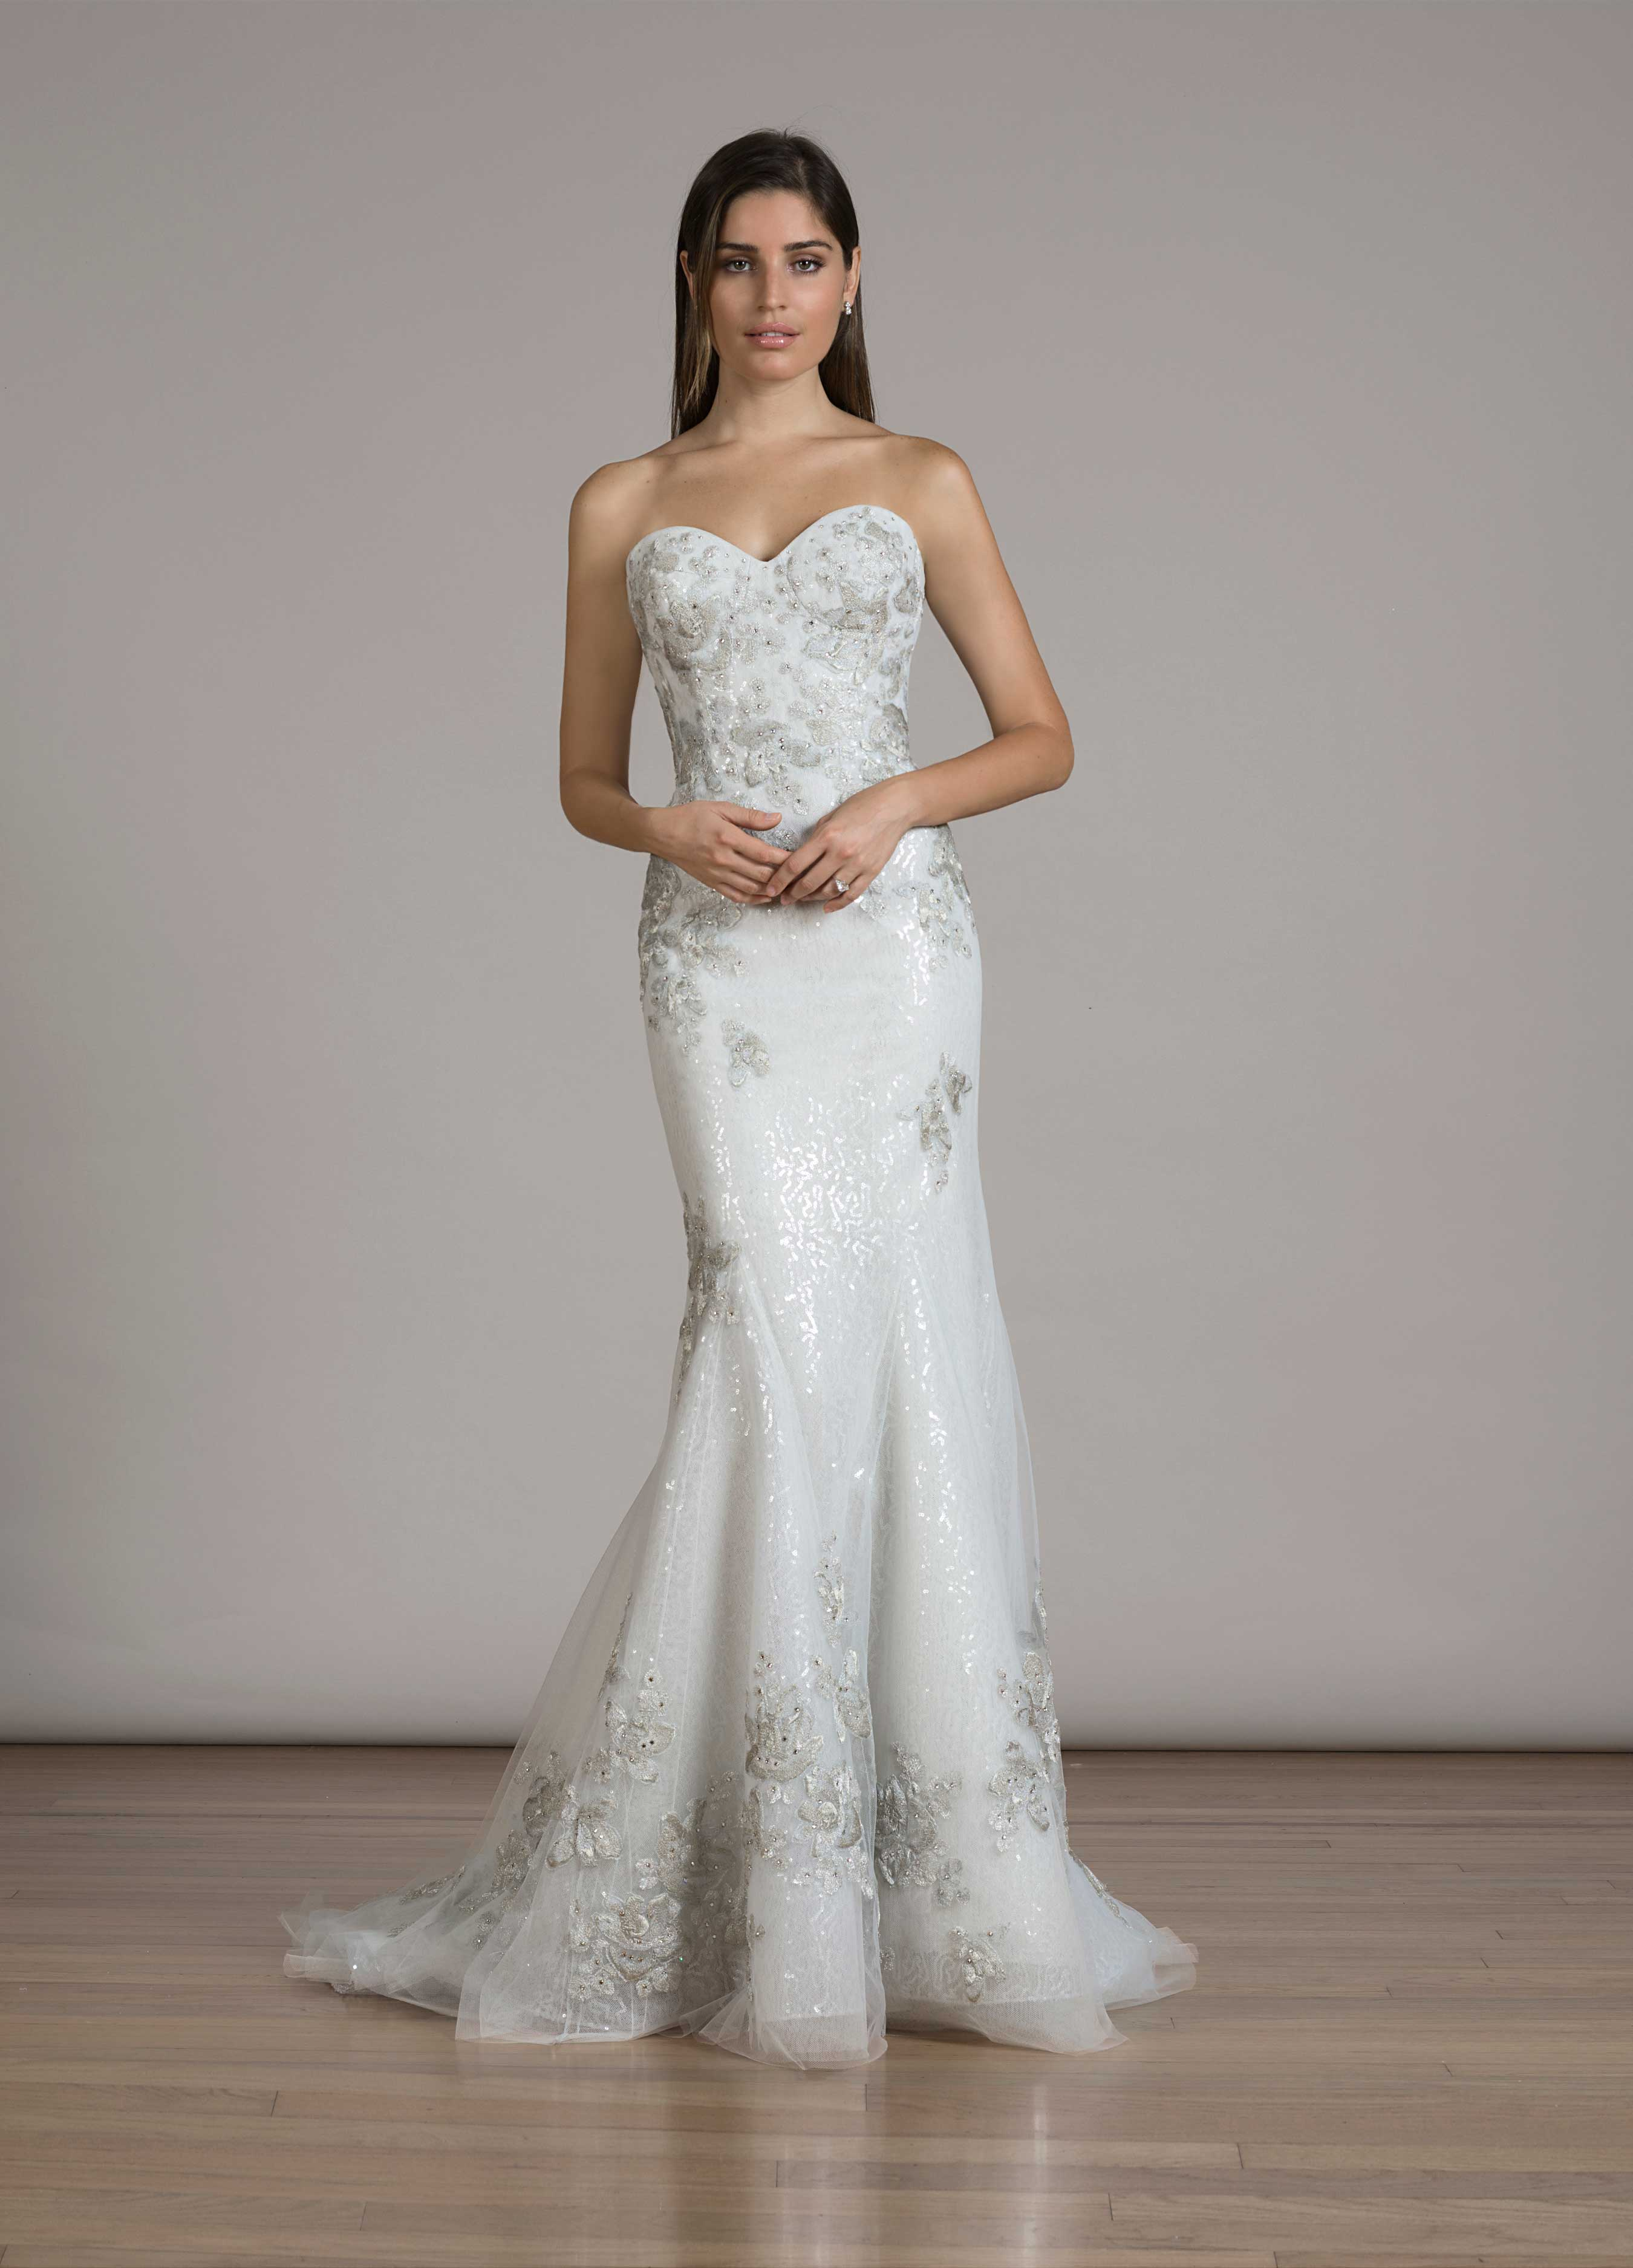 Liancarlo Fall 2016 Style 6843 Strapless Mermaid Wedding Dress With Silver Embroidery: Silver Mermaid Style Wedding Dresses At Websimilar.org